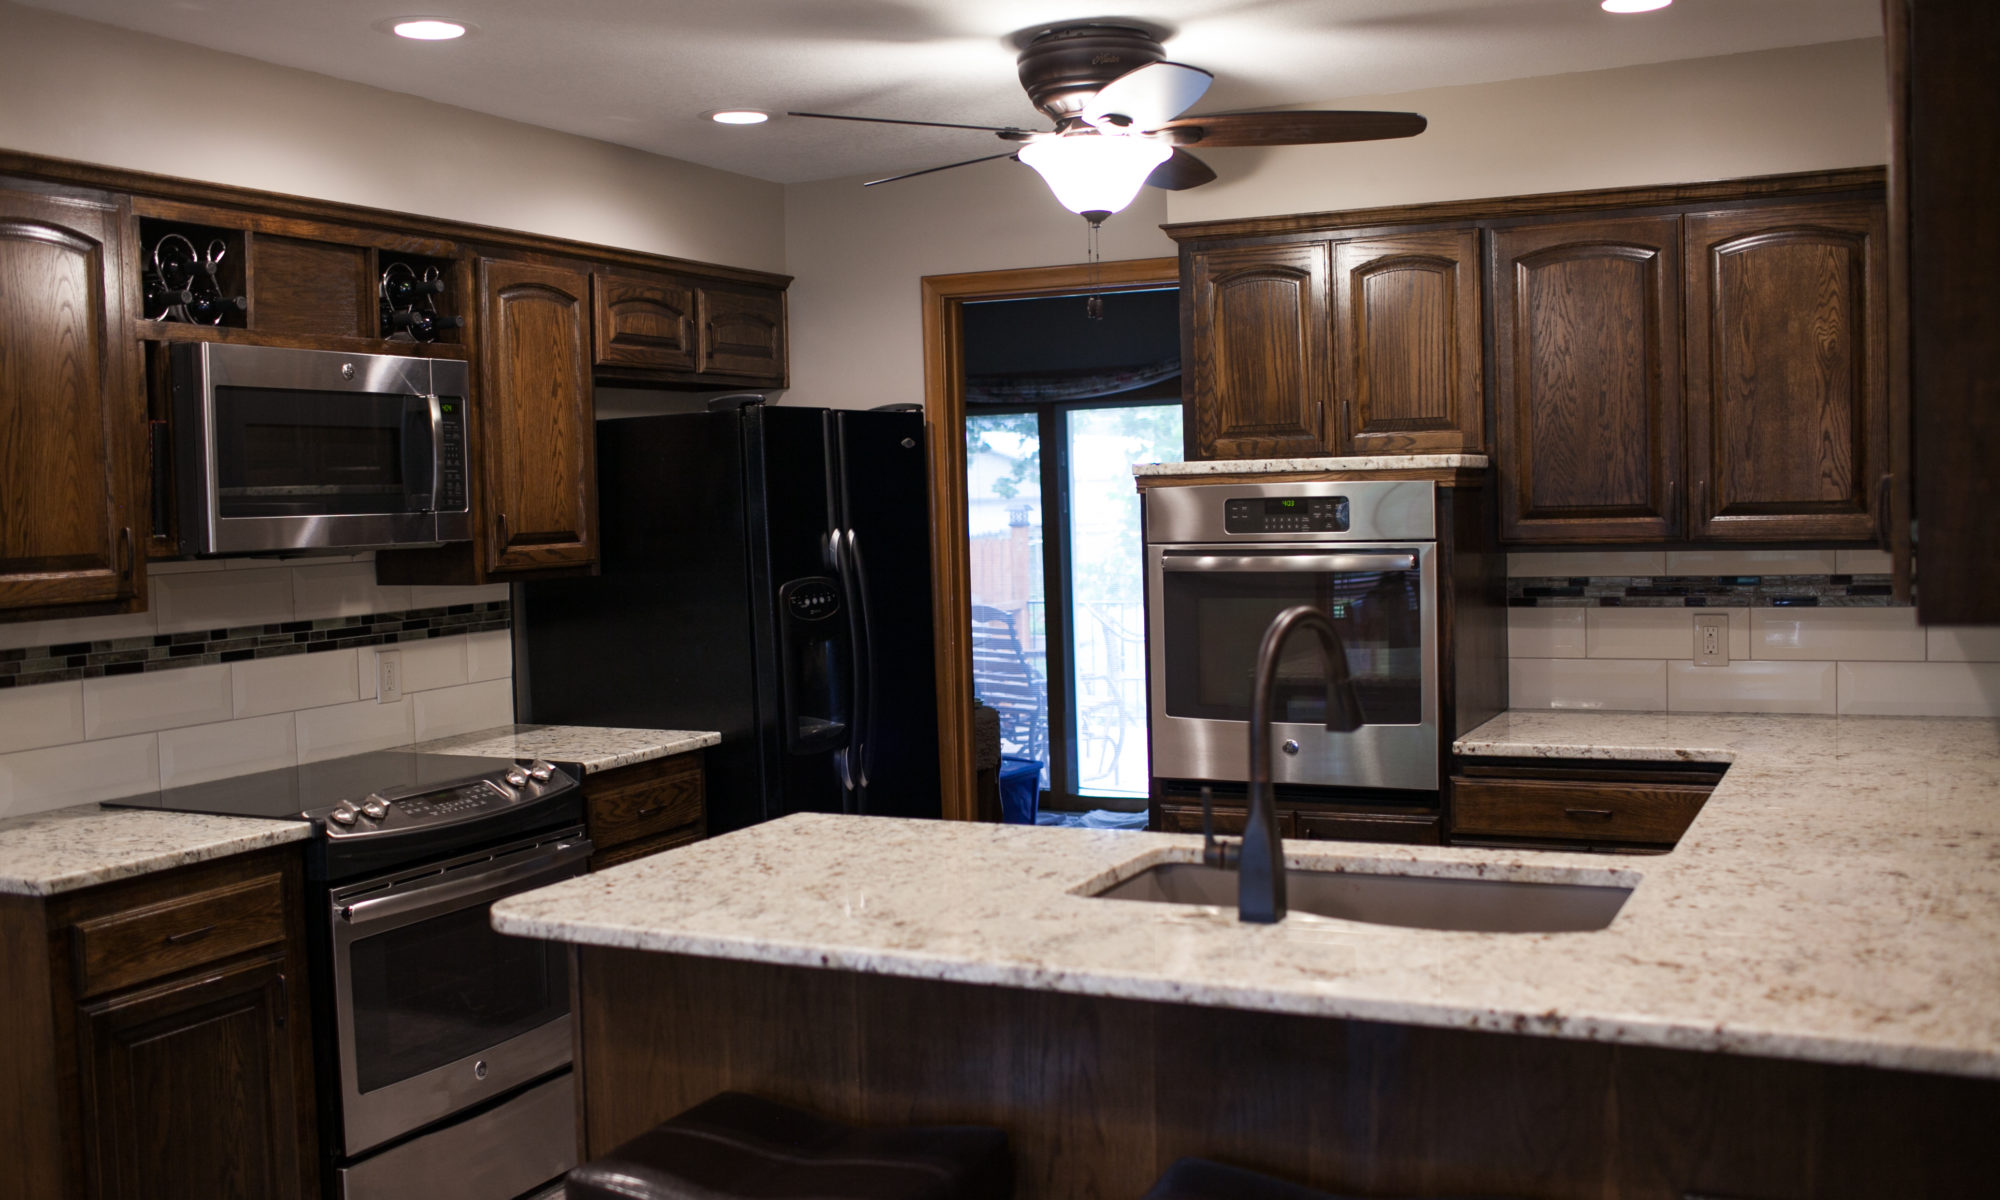 Beau The Kitchen Had Been Pretty Dark So We Added Recessed Lighting With  Dimmable LED Lighting. Now The Homeowners Can Set The Lighting Just How  They Want It.